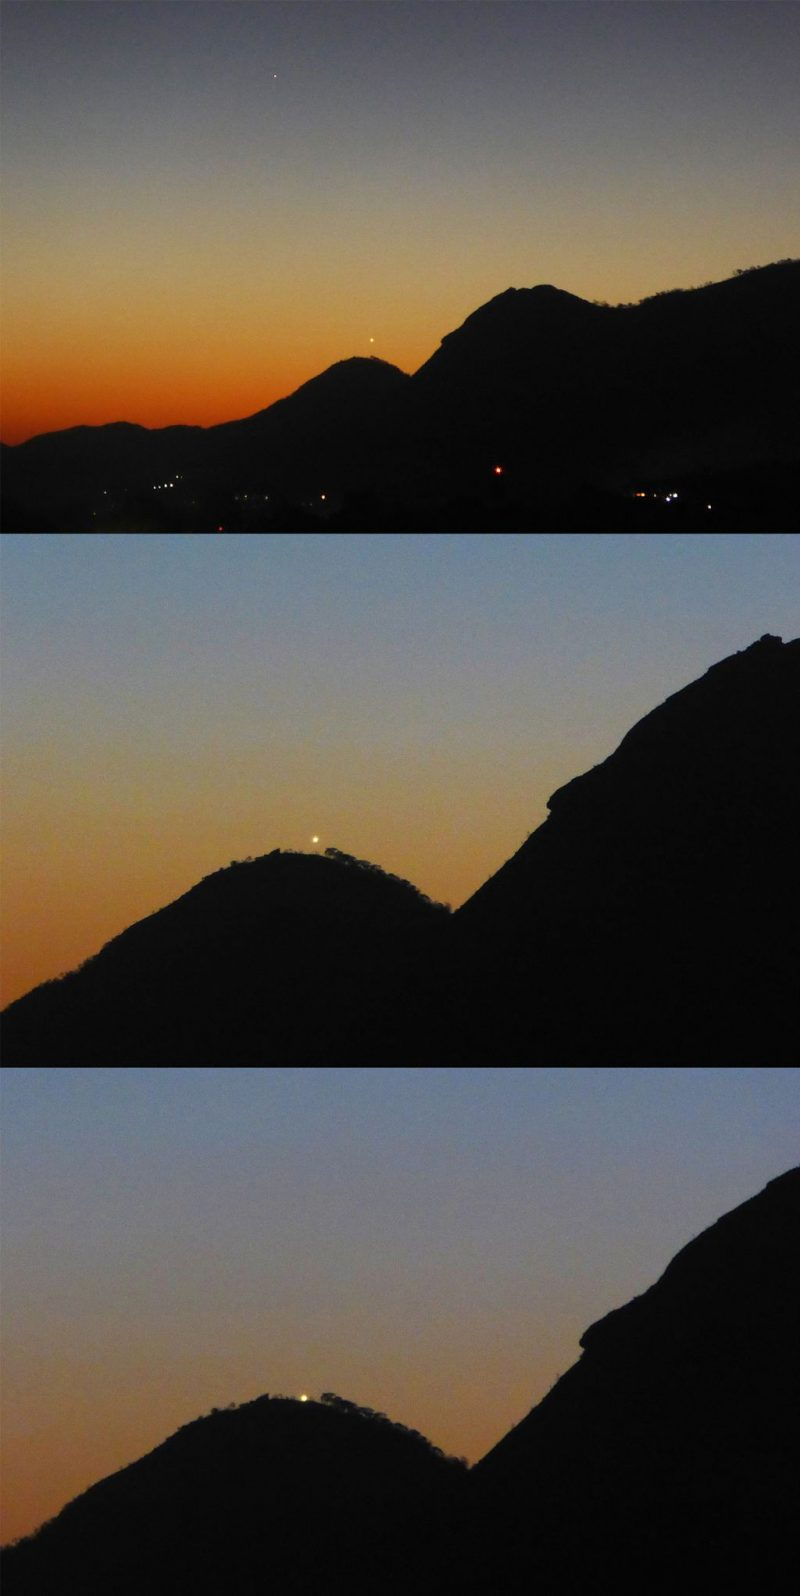 Three images after sunset, as the sky is darkening, of Mercury and Venus over dark mountain peak.